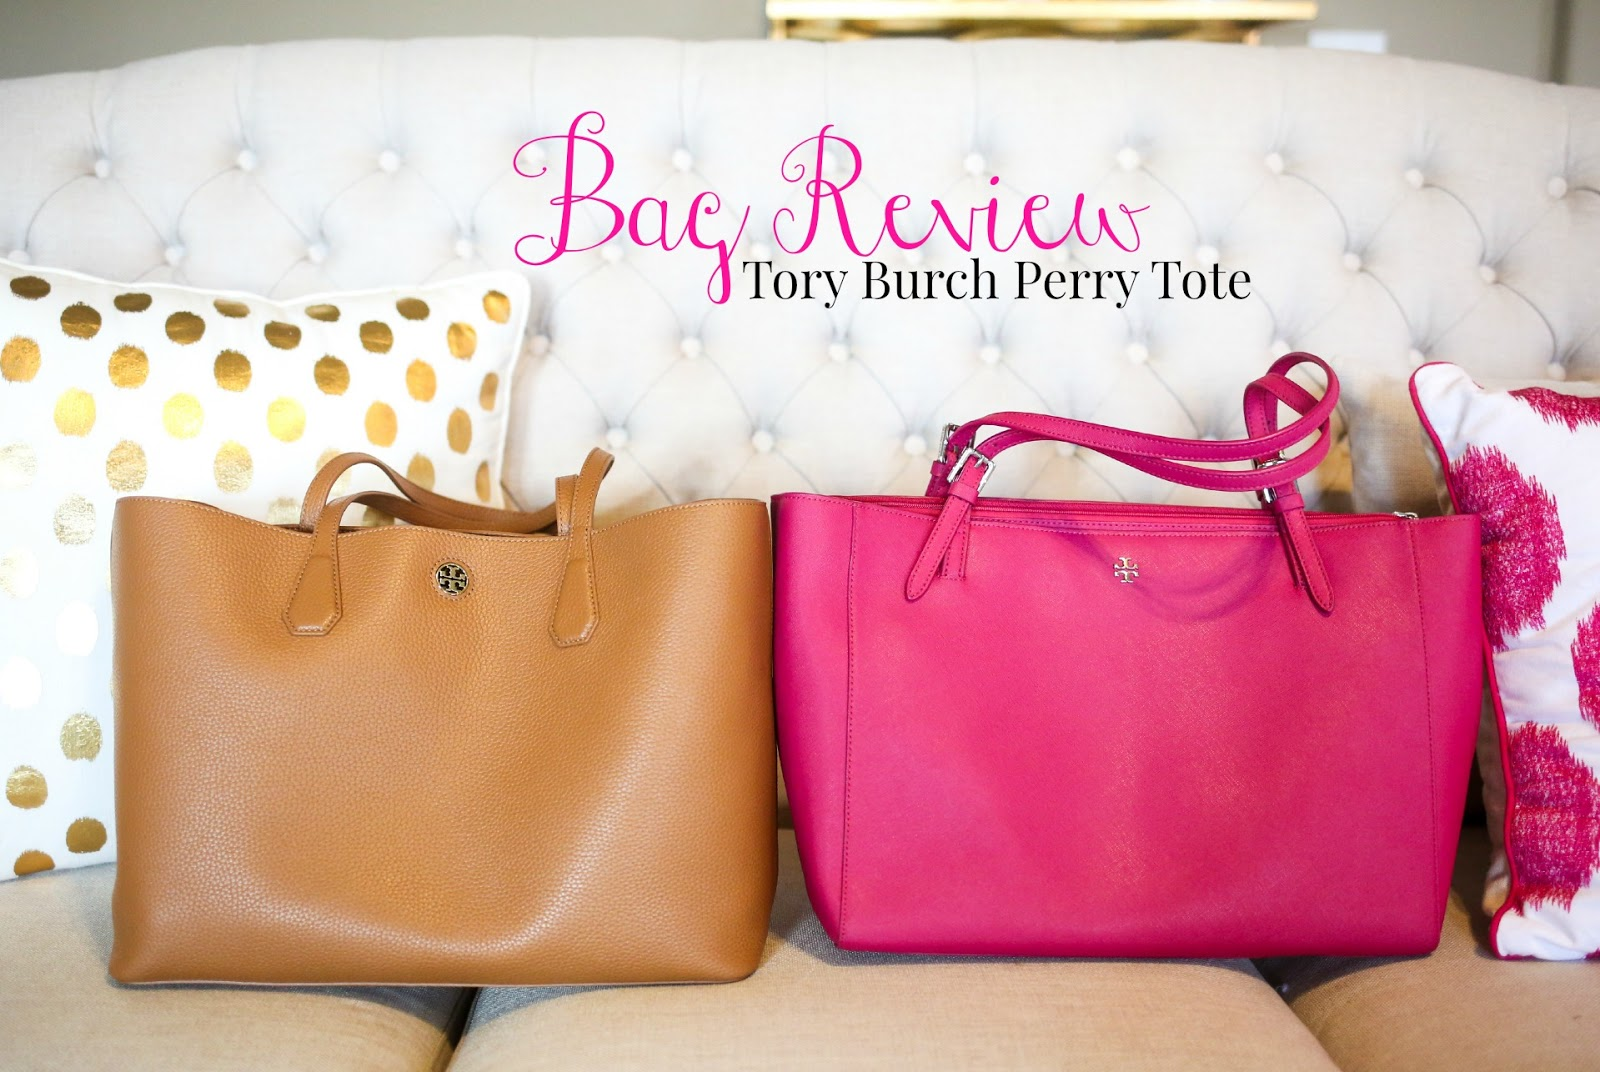 382d535d2f7 Tory Burch Bag Review | The Sweetest Thing | Bloglovin'